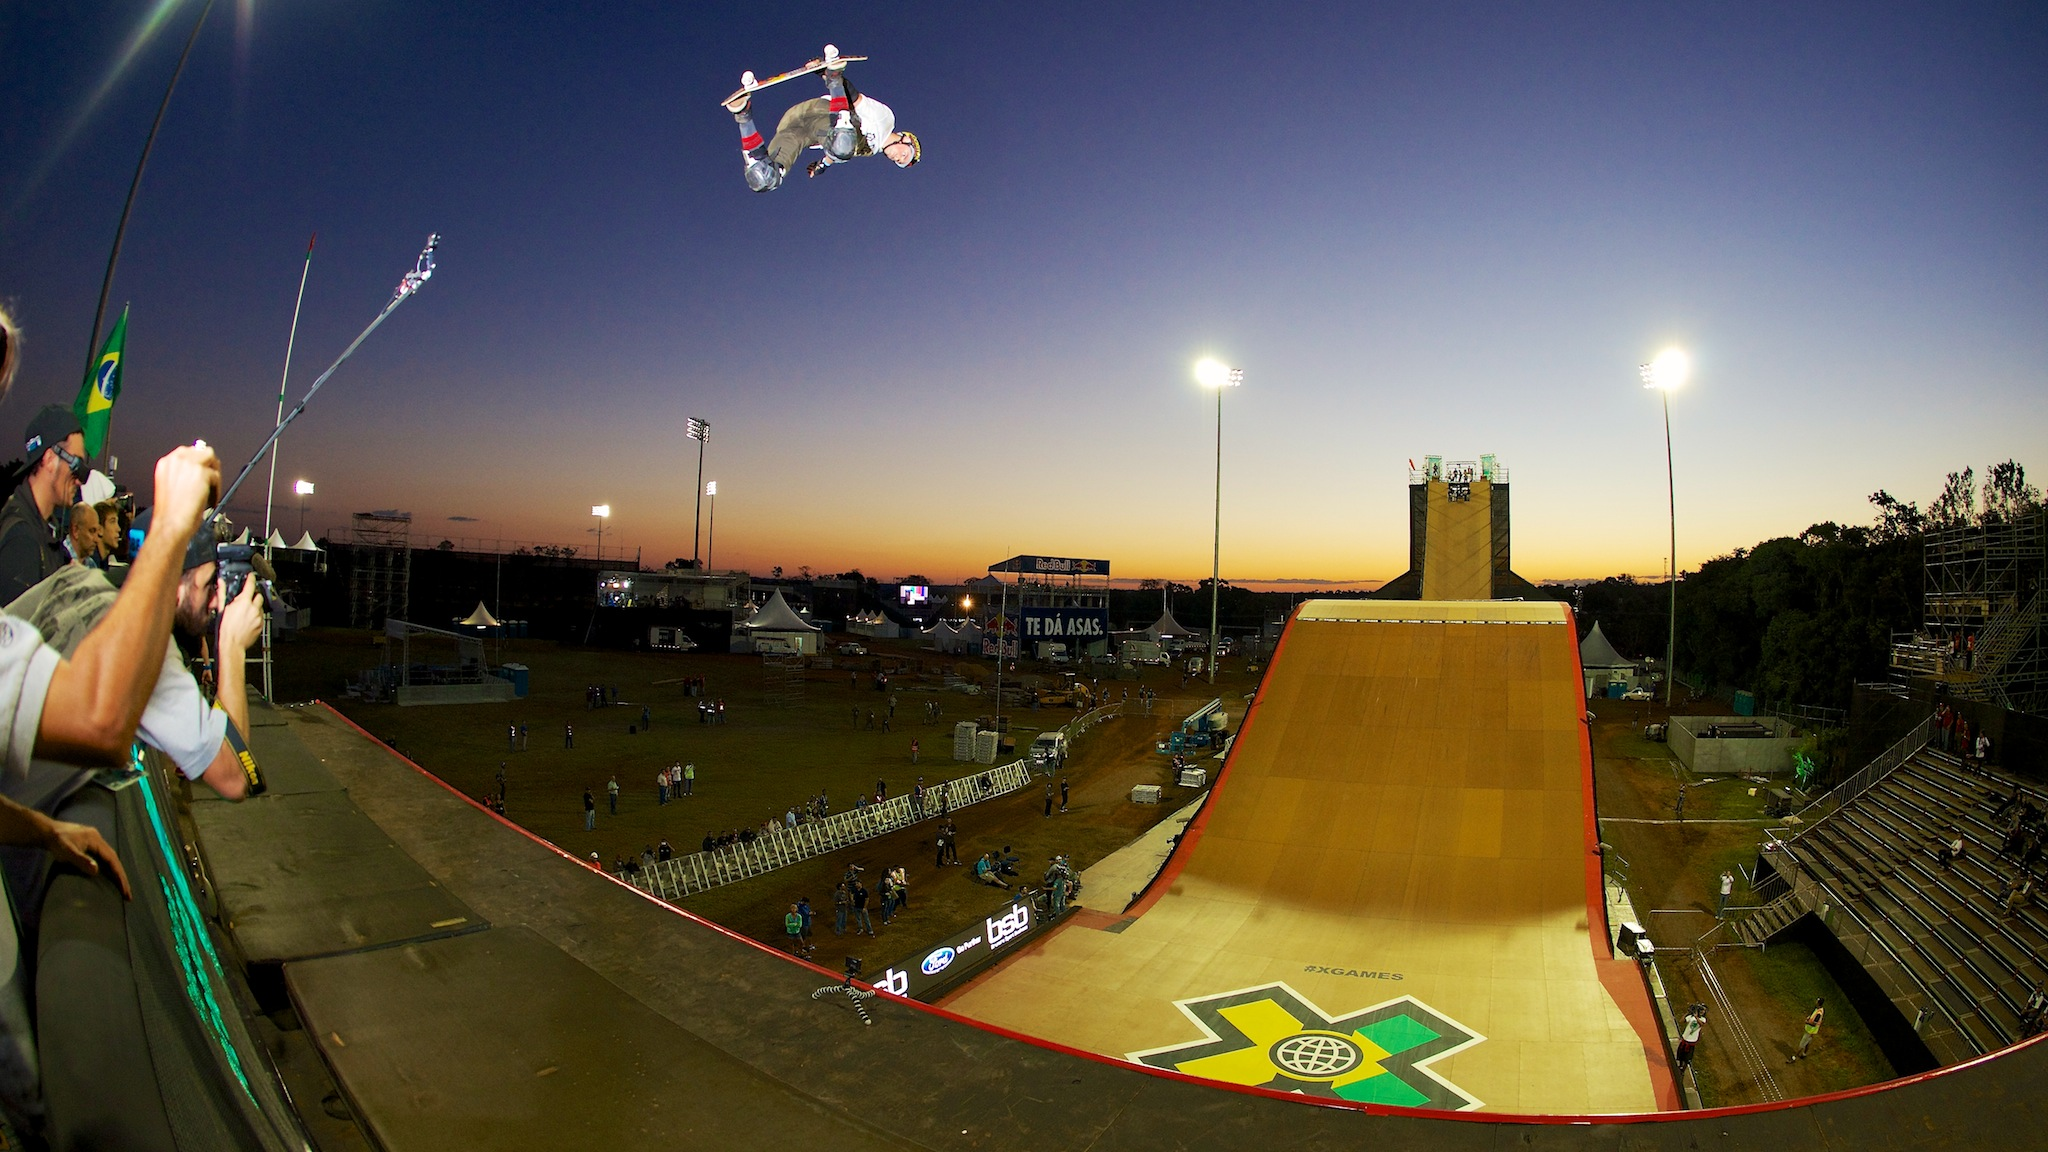 X Games Foz do Iguacu, 2013